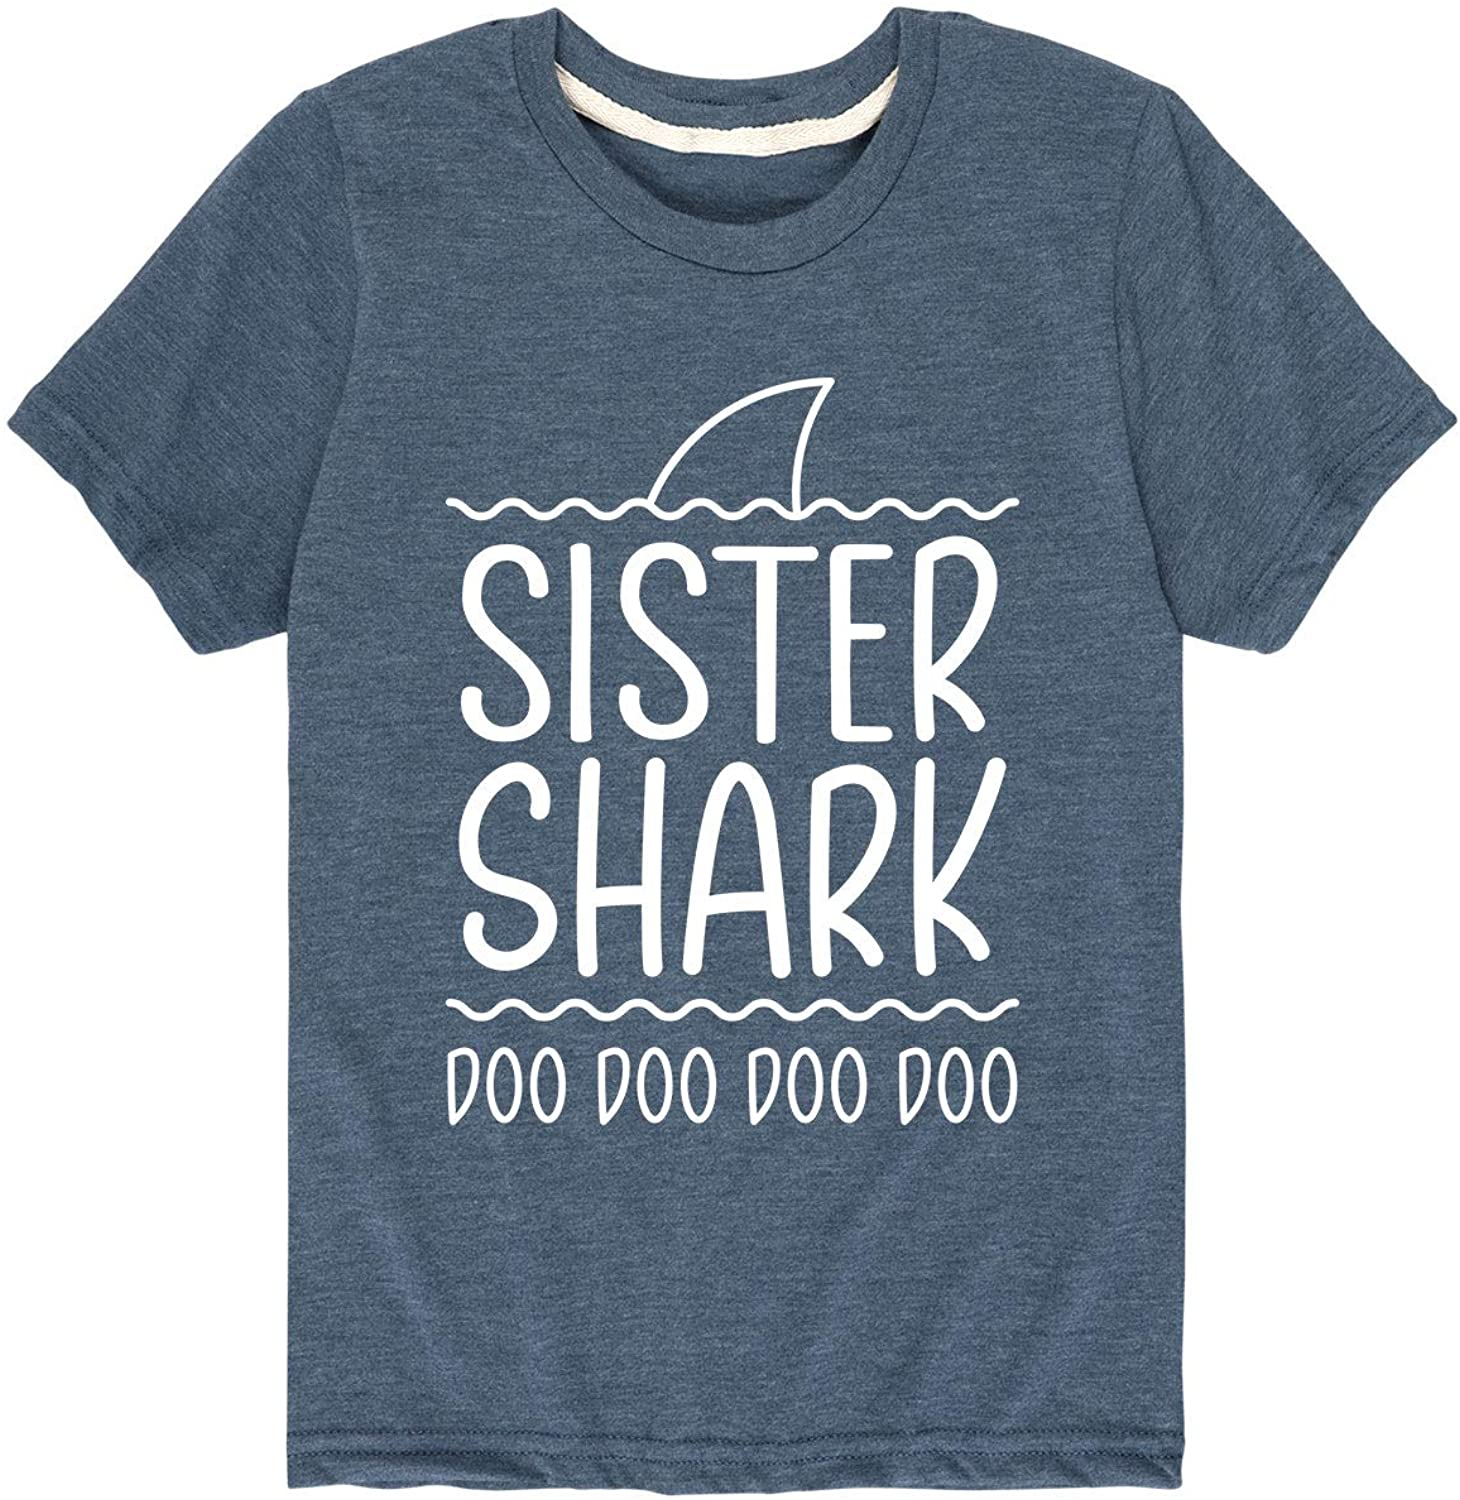 Sister Shark - Youth Short Sleeve Graphic T-Shirt